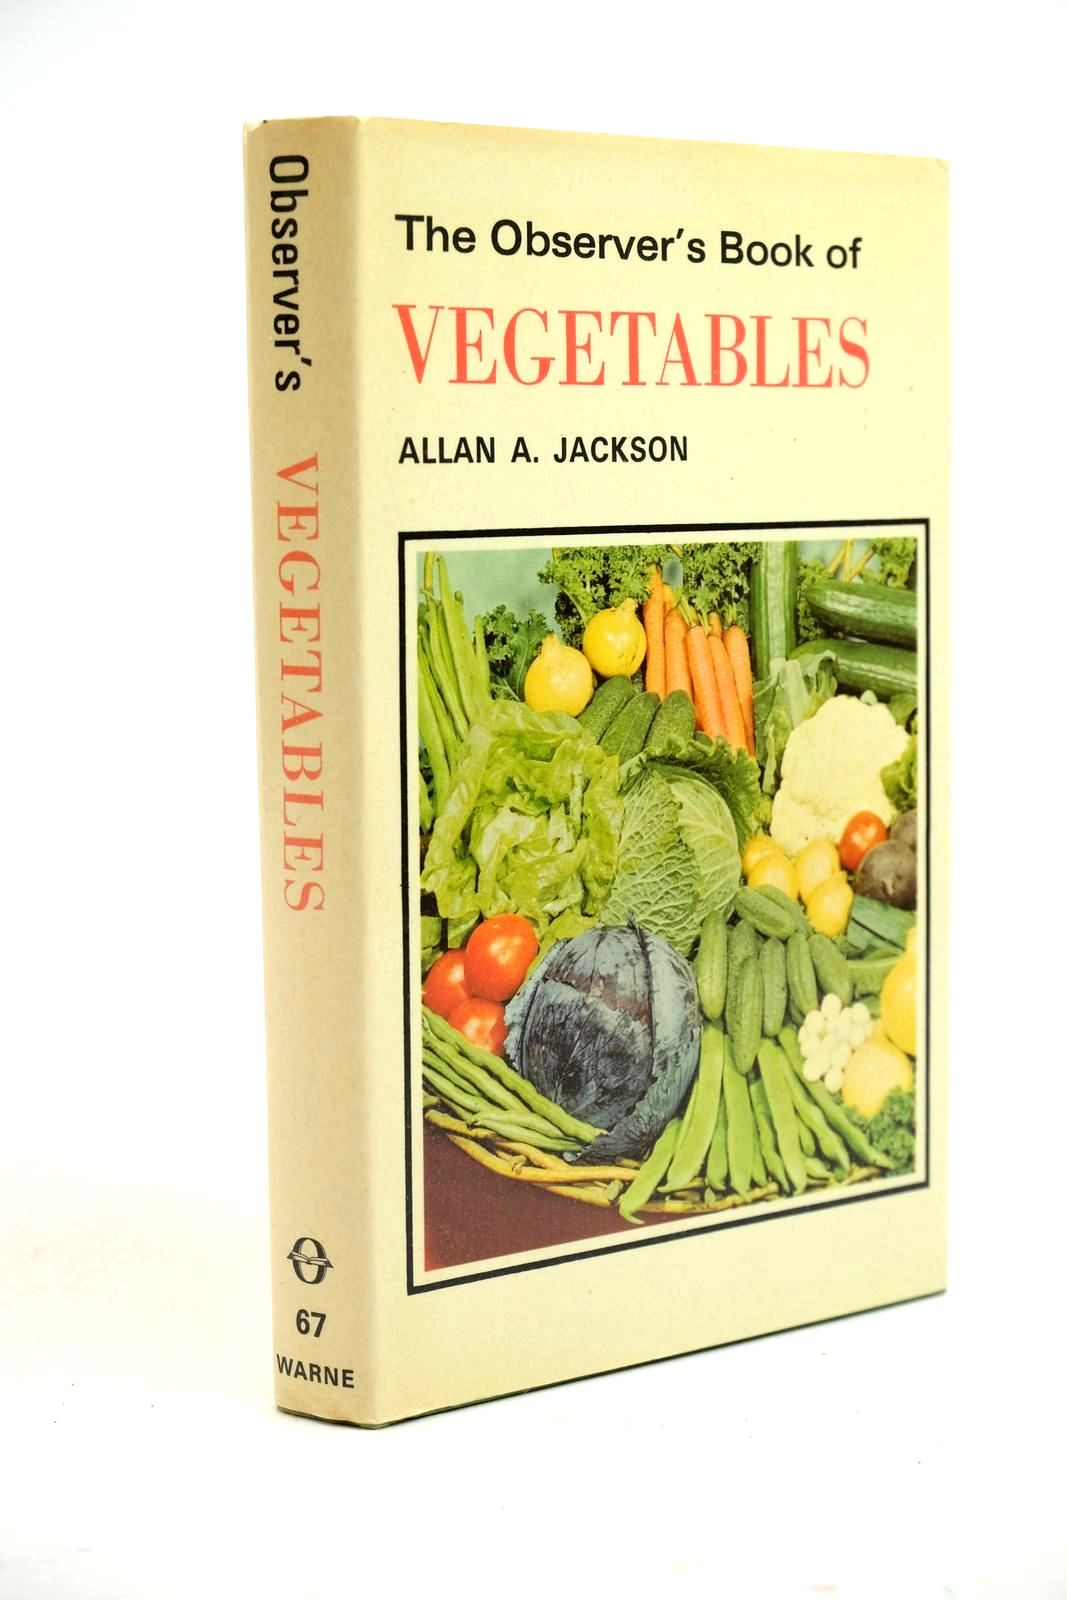 Photo of THE OBSERVER'S BOOK OF VEGETABLES written by Jackson, Allan A. published by Frederick Warne (STOCK CODE: 1321343)  for sale by Stella & Rose's Books